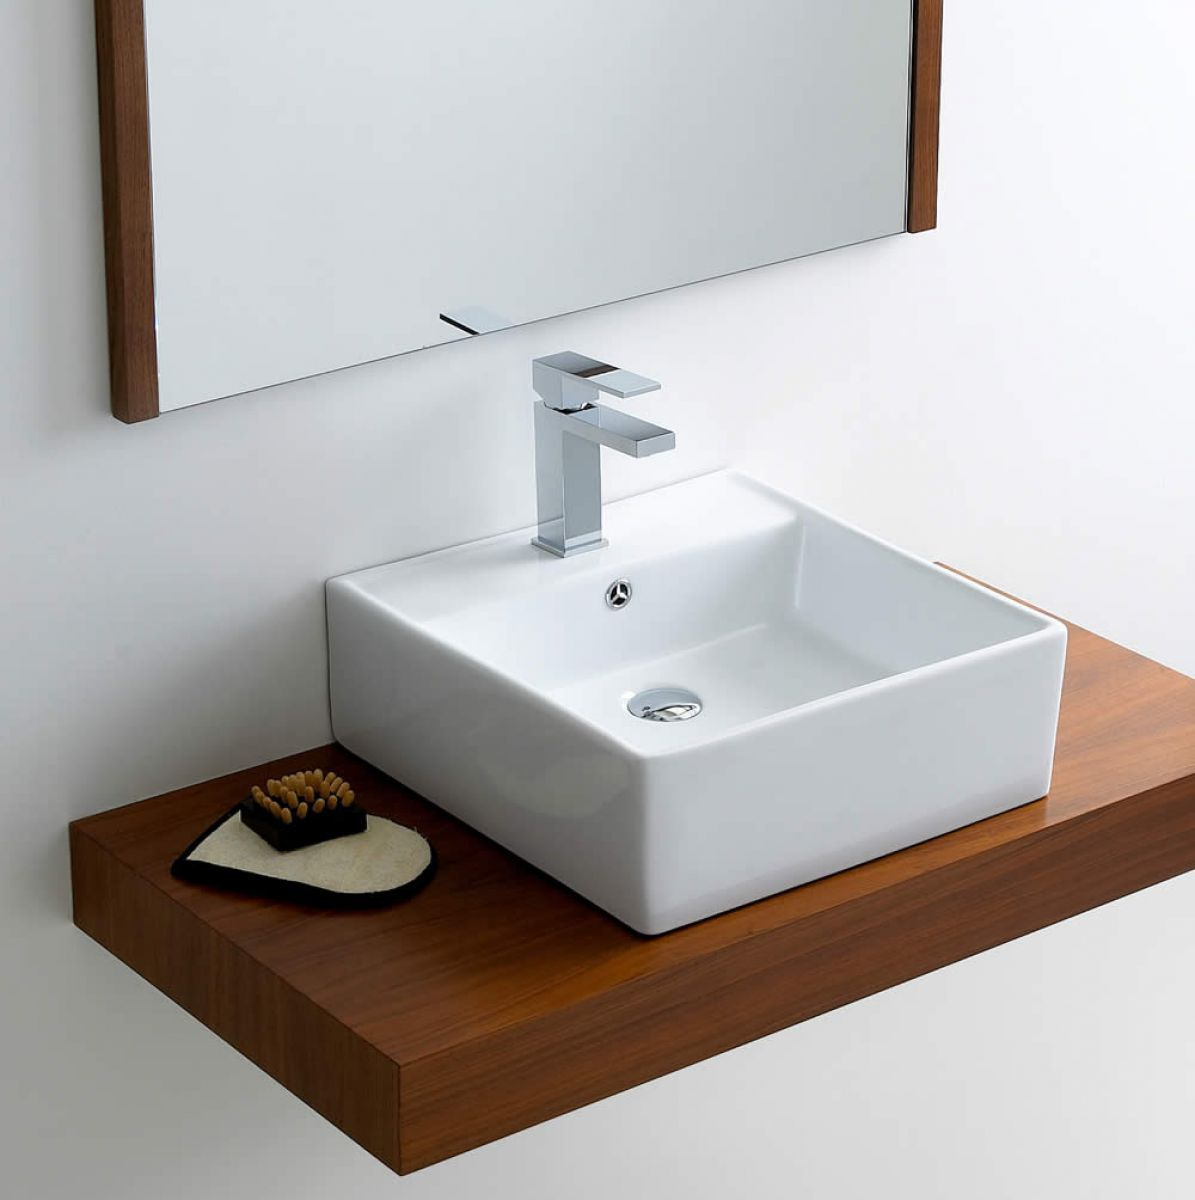 Phoenix Full Depth Countertop Washbasin Vb008 Uk Bathrooms